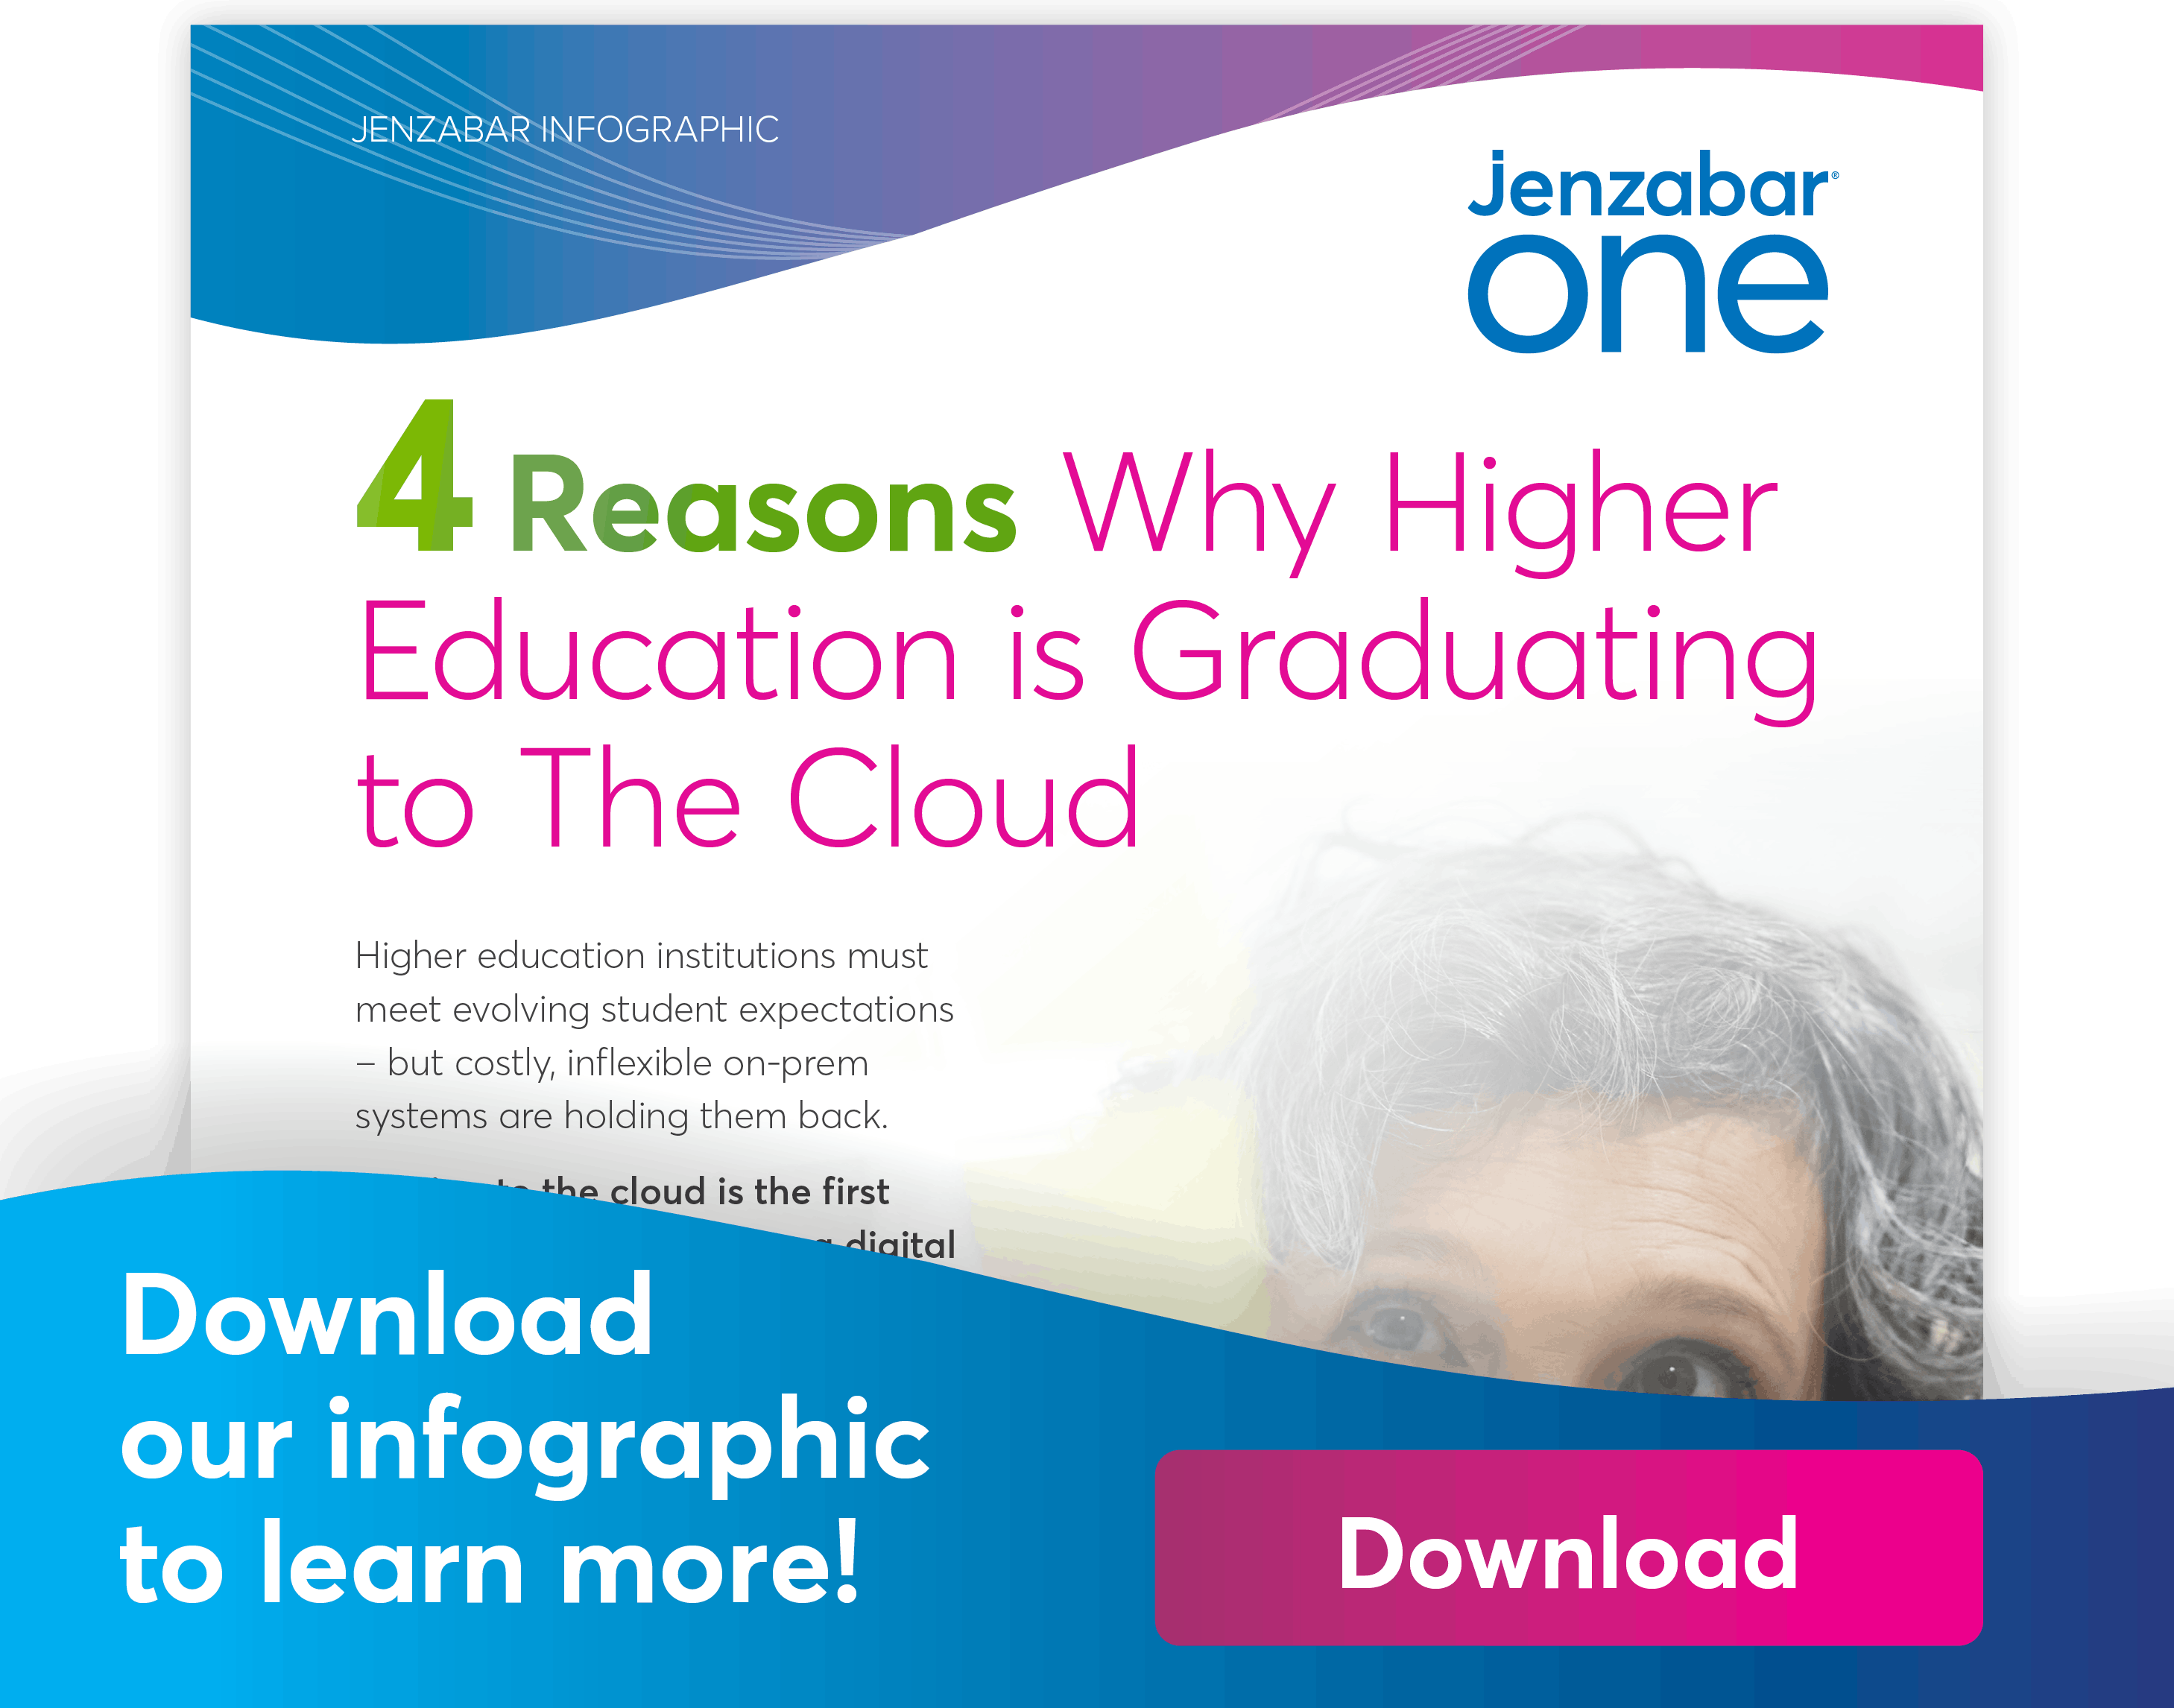 4 reasons Why Higher Education is Graduating to the Cloud